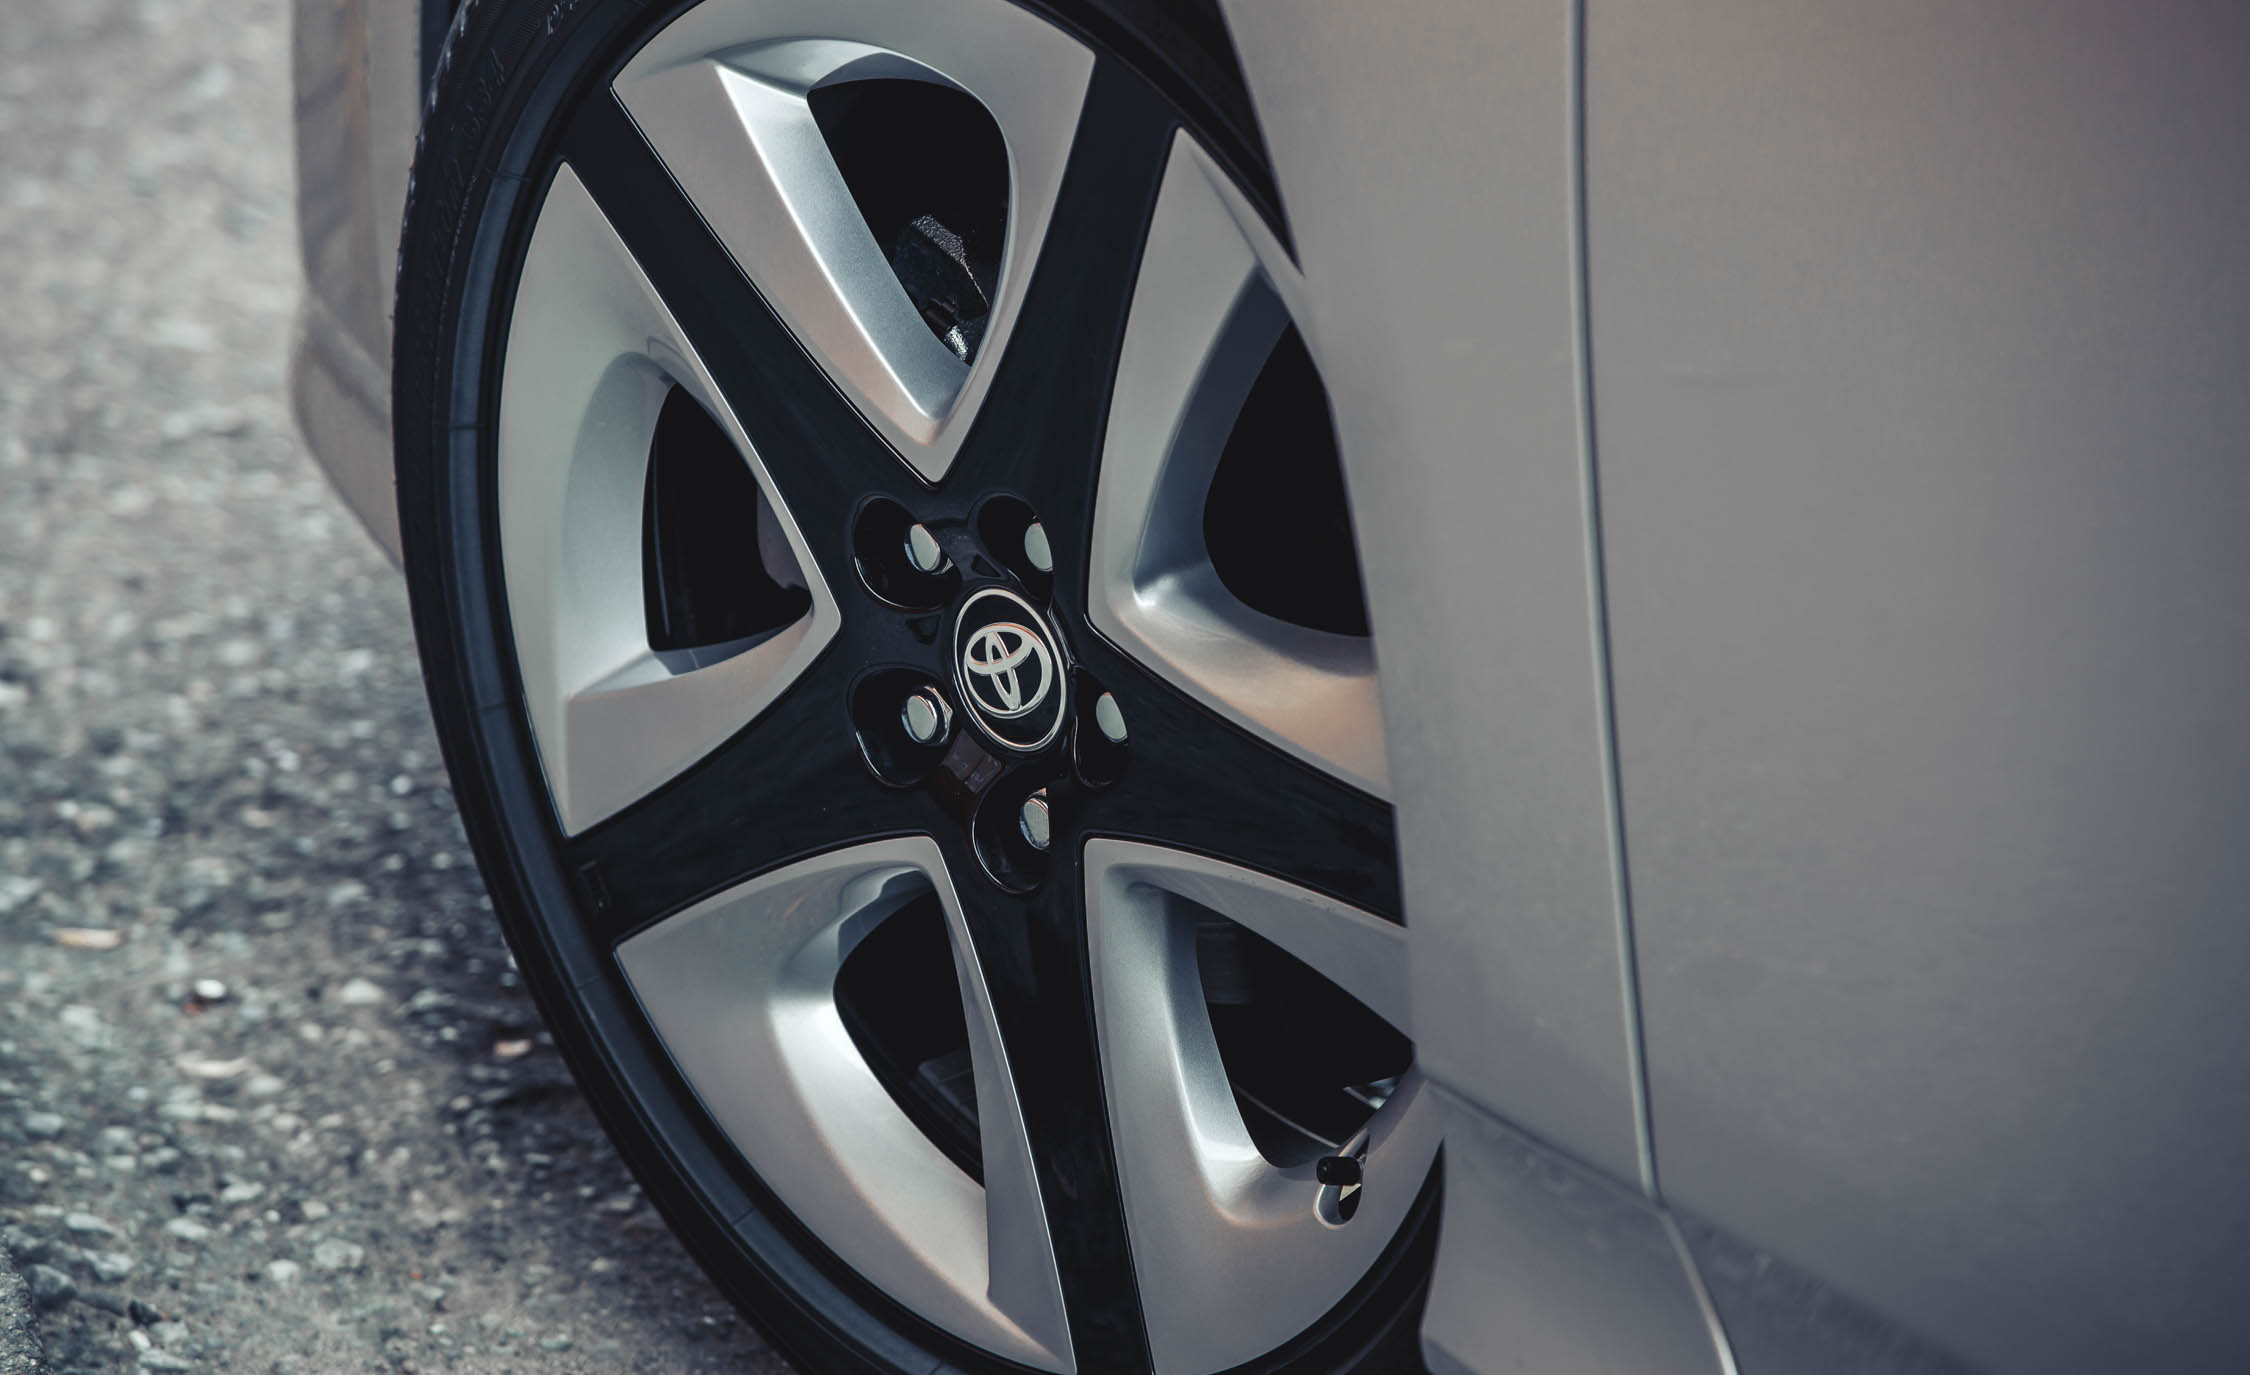 2017 Toyota Prius Exterior View Wheel Trim (Photo 39 of 64)